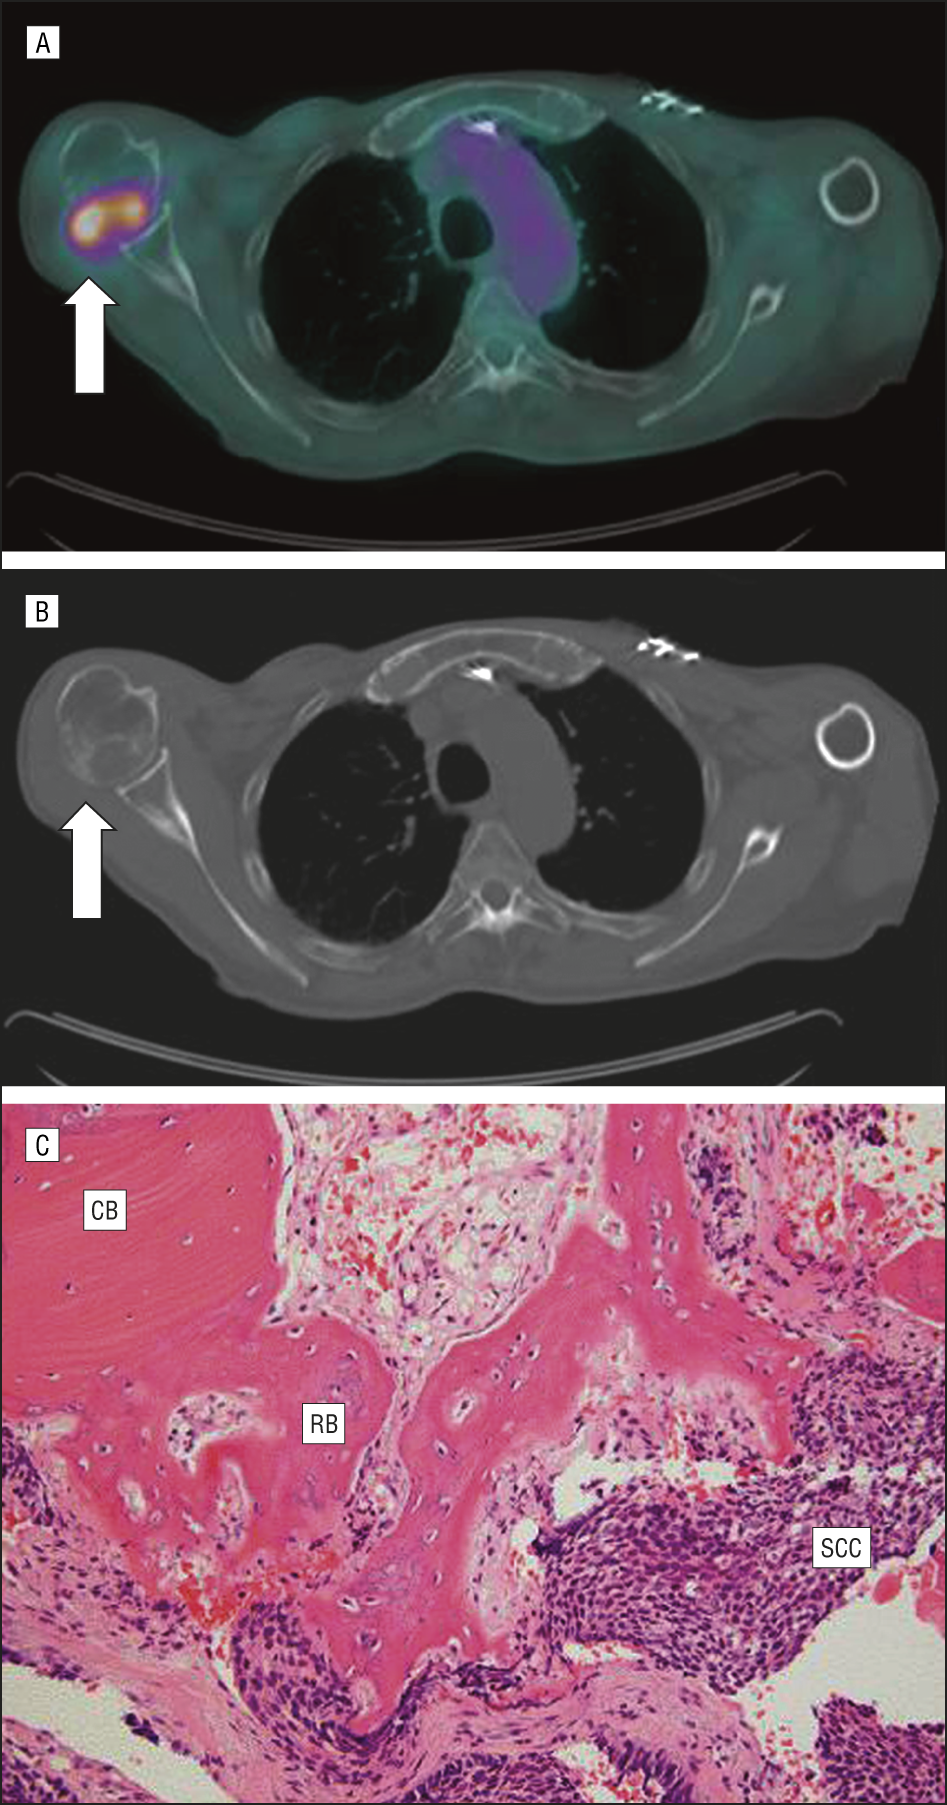 c45bd963361 Positron emission tomography–computed tomography scans on the left showing  an area of focally increased